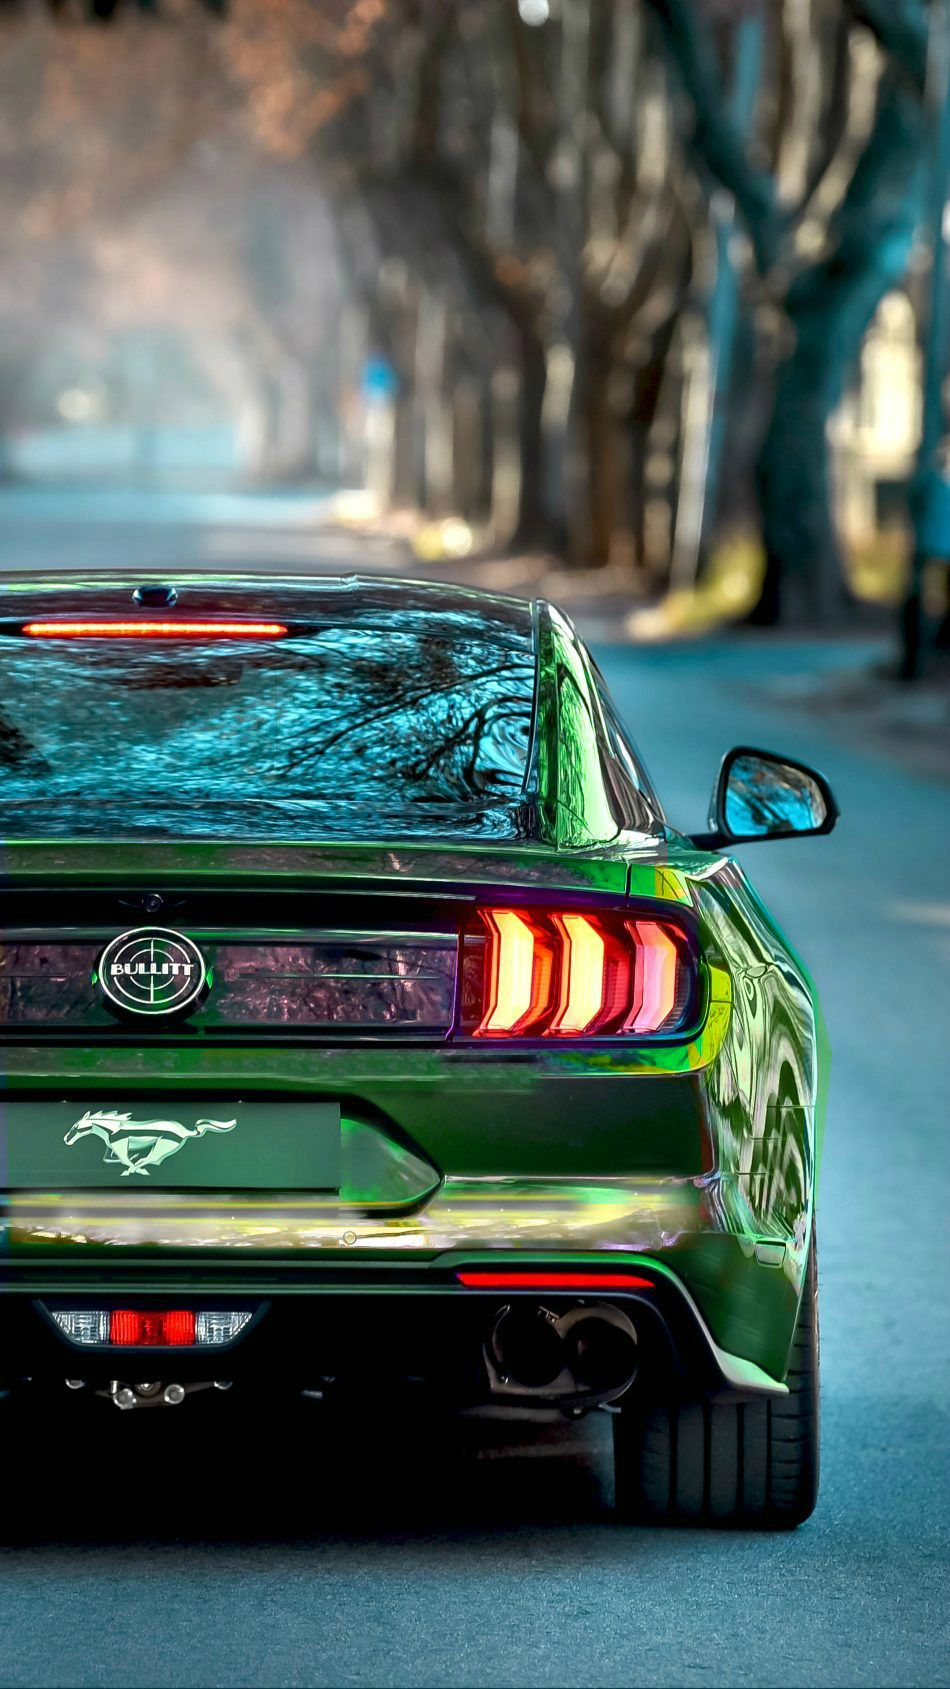 Pin By Michael Mallory On Cars In 2020 Ford Mustang Wallpaper